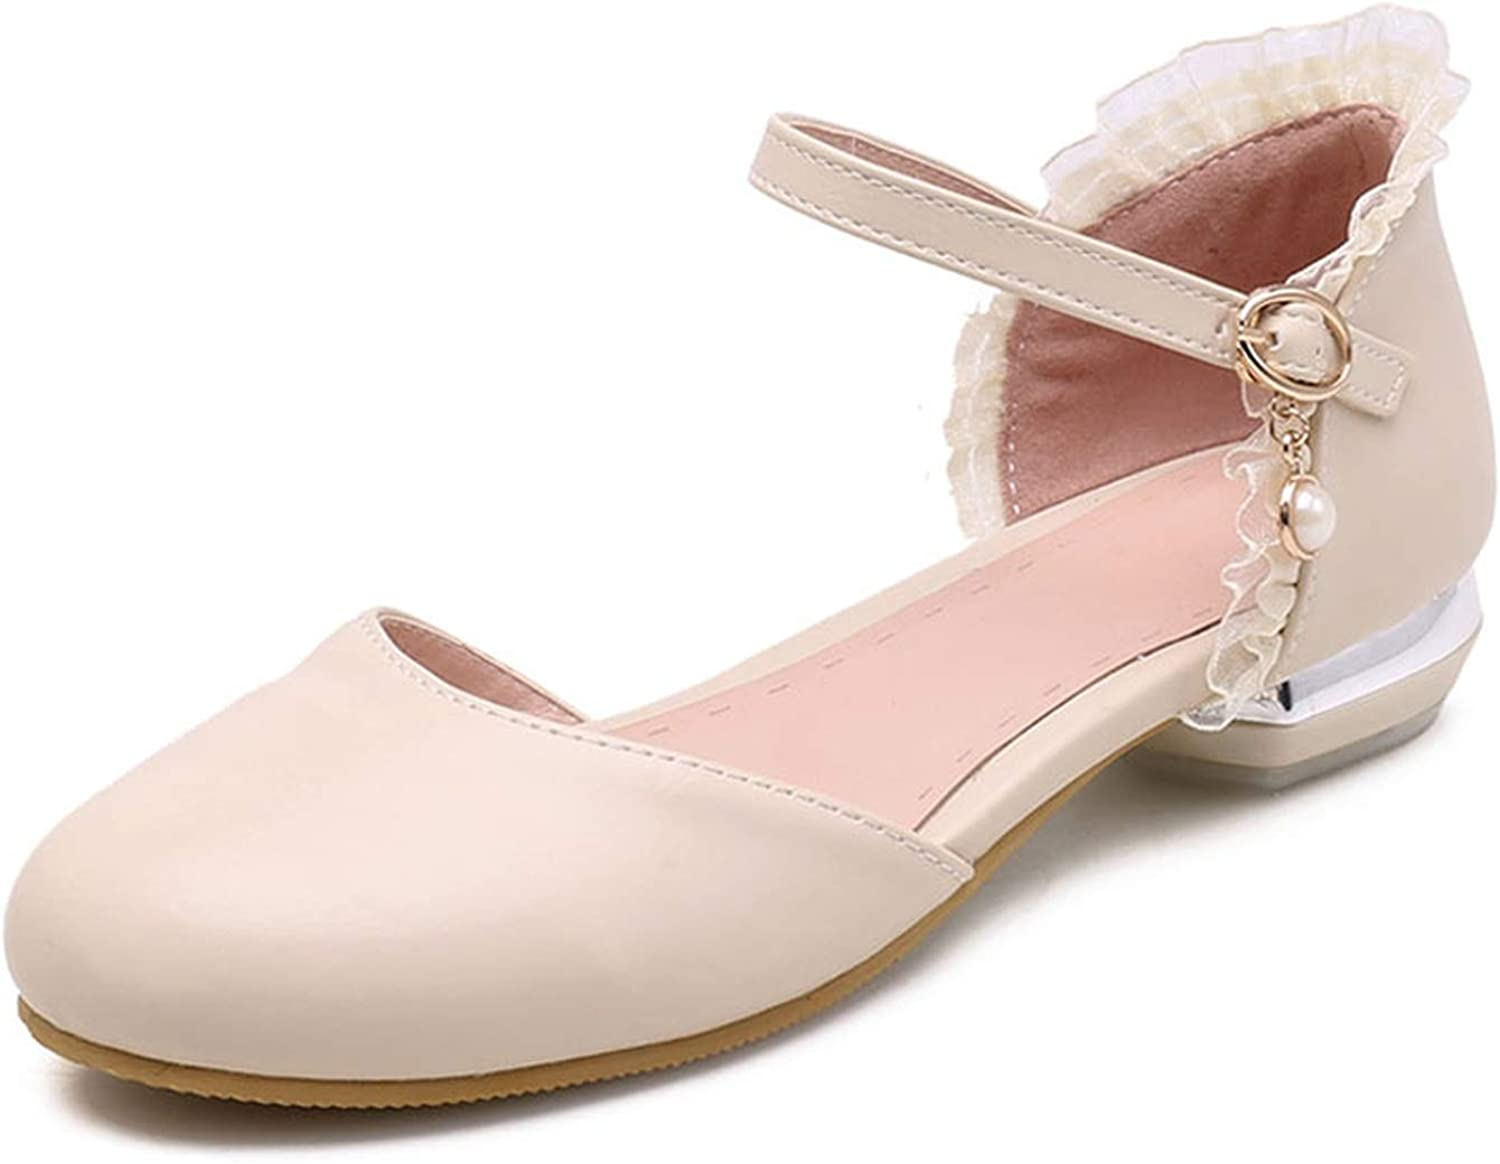 Flat Sandals Women Summer shoes Sweet Lace Prom shoes Woman sandalie Round Toe Vintage shoes Summer Girls Footwear Pink